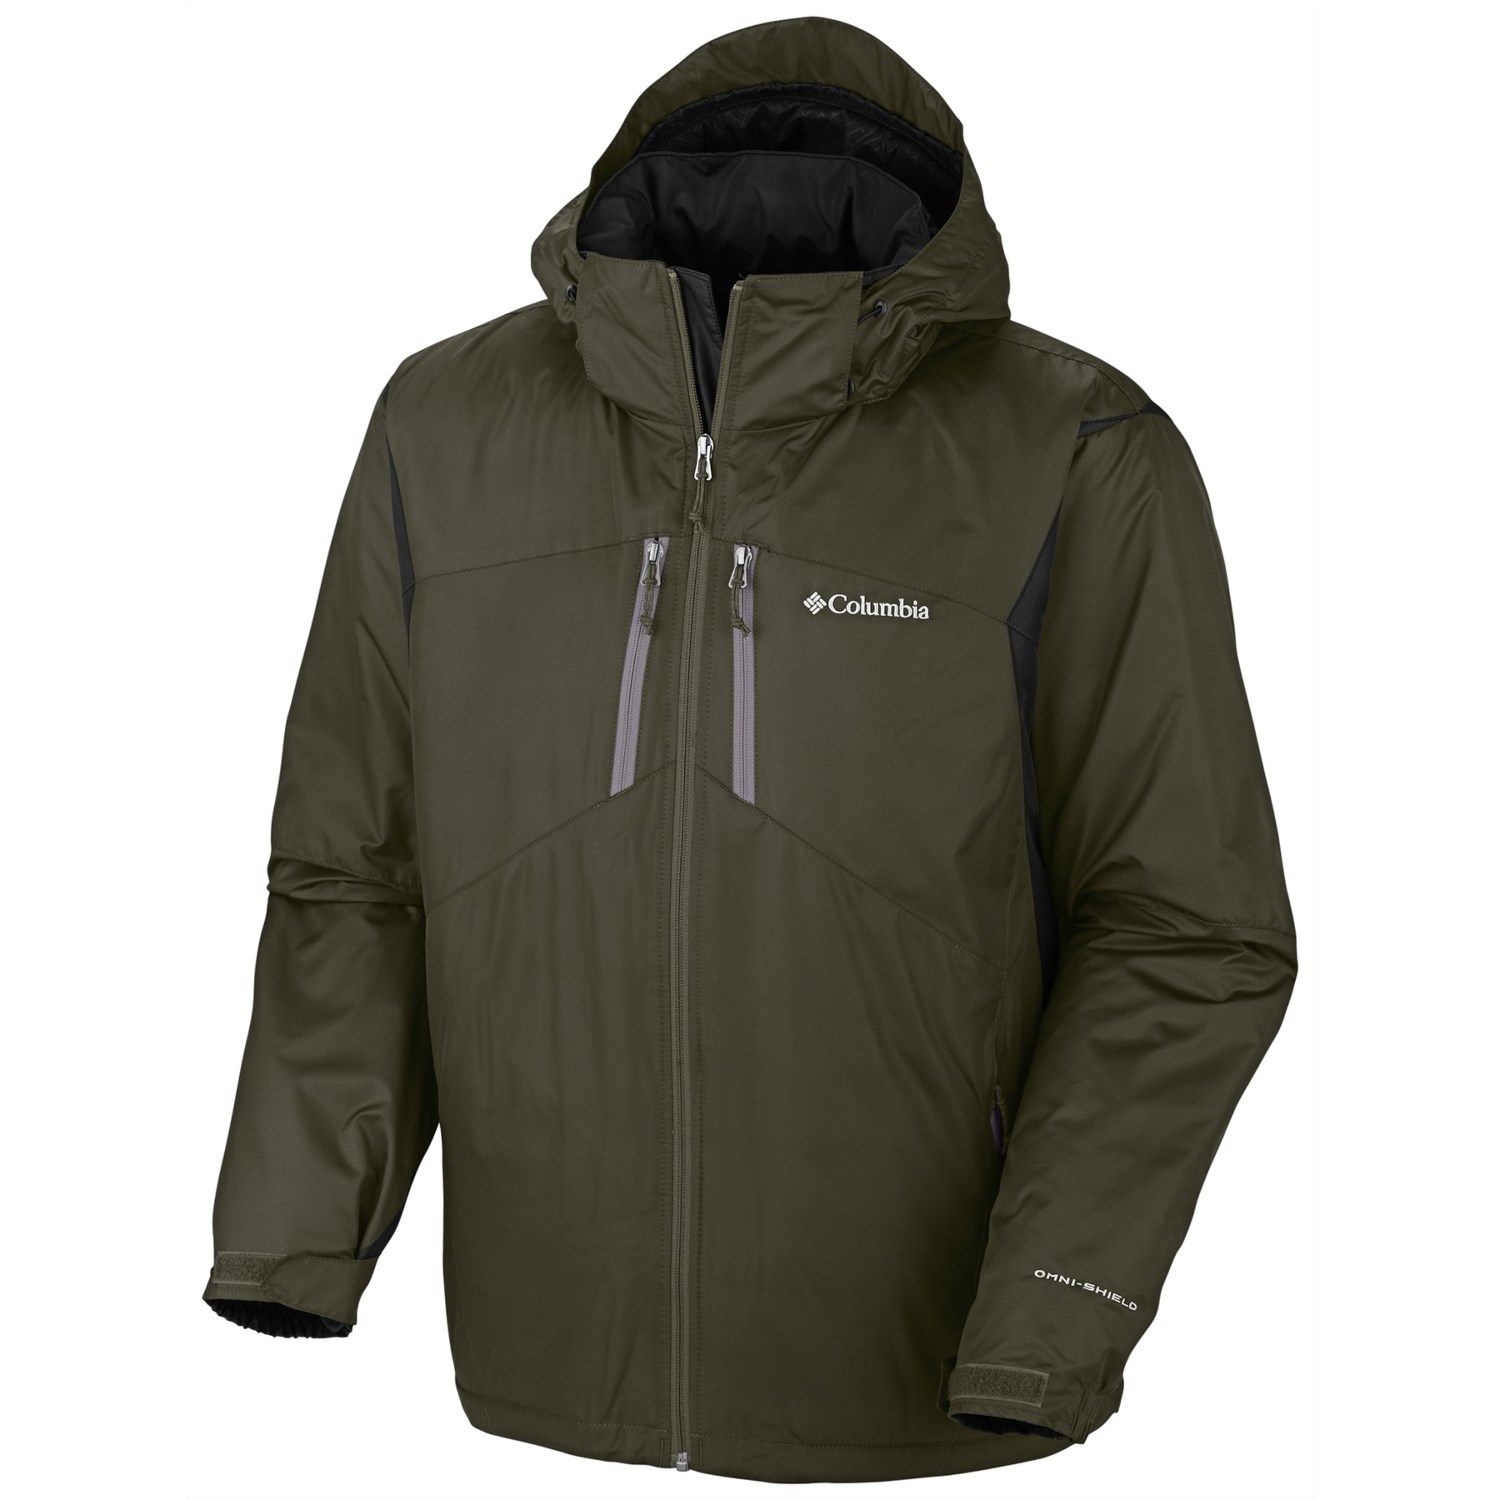 CountryOutfitter has a complete assortment of Men's Big & Tall Jackets, in stock and ready to ship, from brands including: STS Ranchwear, Scully, Carhartt and more!